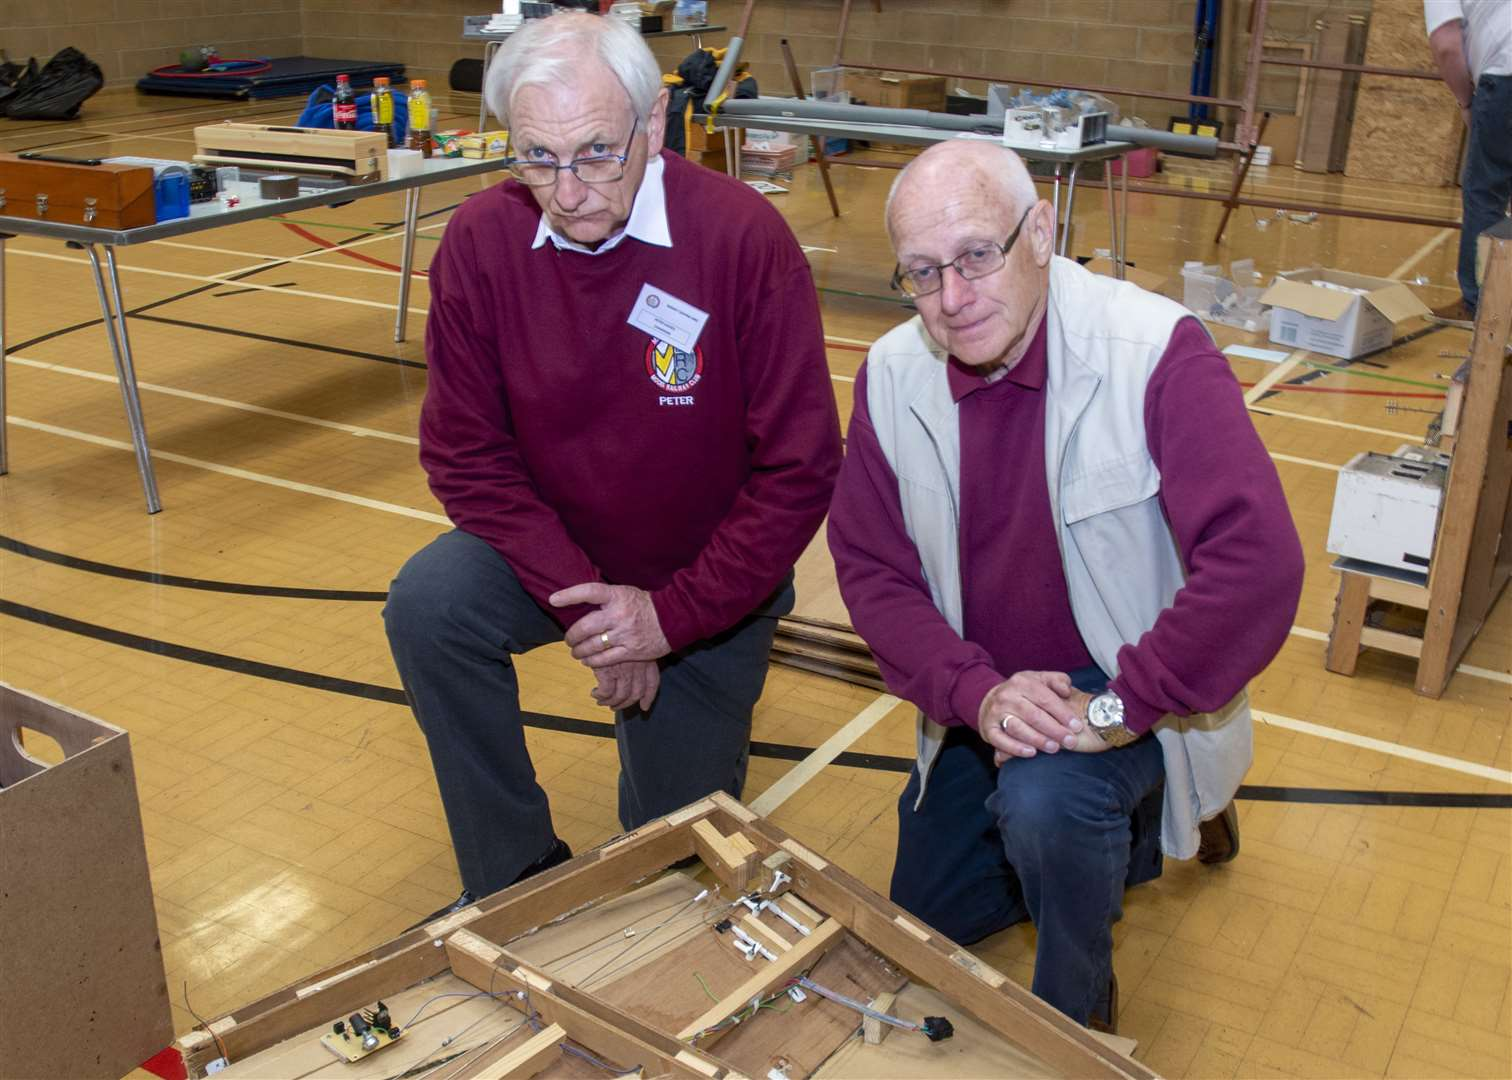 Market Deeping Model Railway Club to rise like phoenix from the ashes